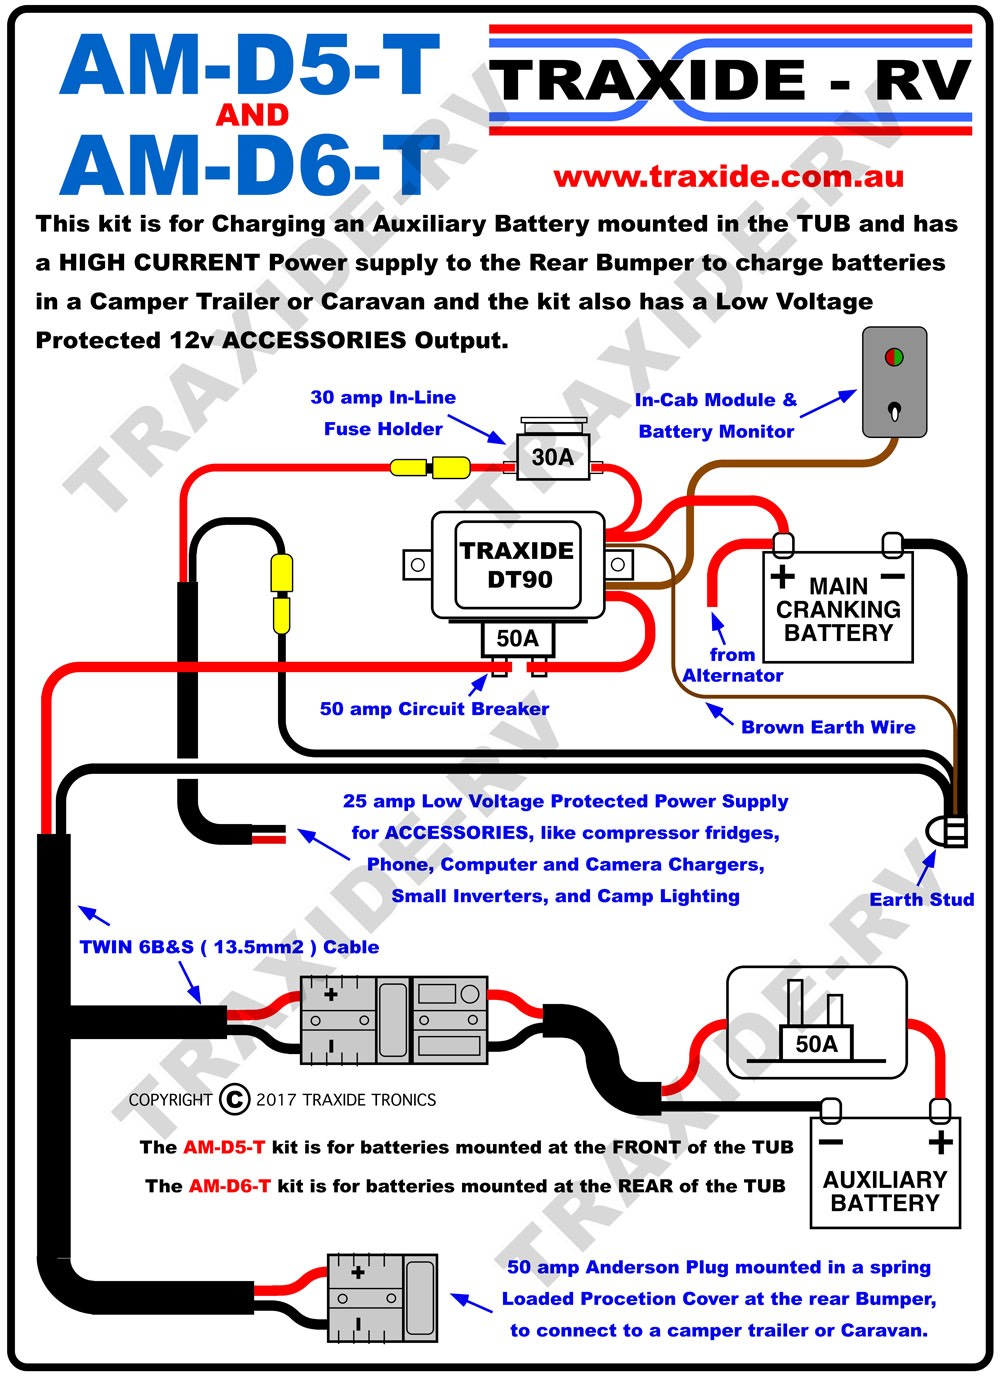 WF_2603] Rv Dual Battery Wiring Kit Diy Dual Battery Kits Traxide Rv  Traxide Wiring DiagramTzici Nuvit Inrebe Mohammedshrine Librar Wiring 101